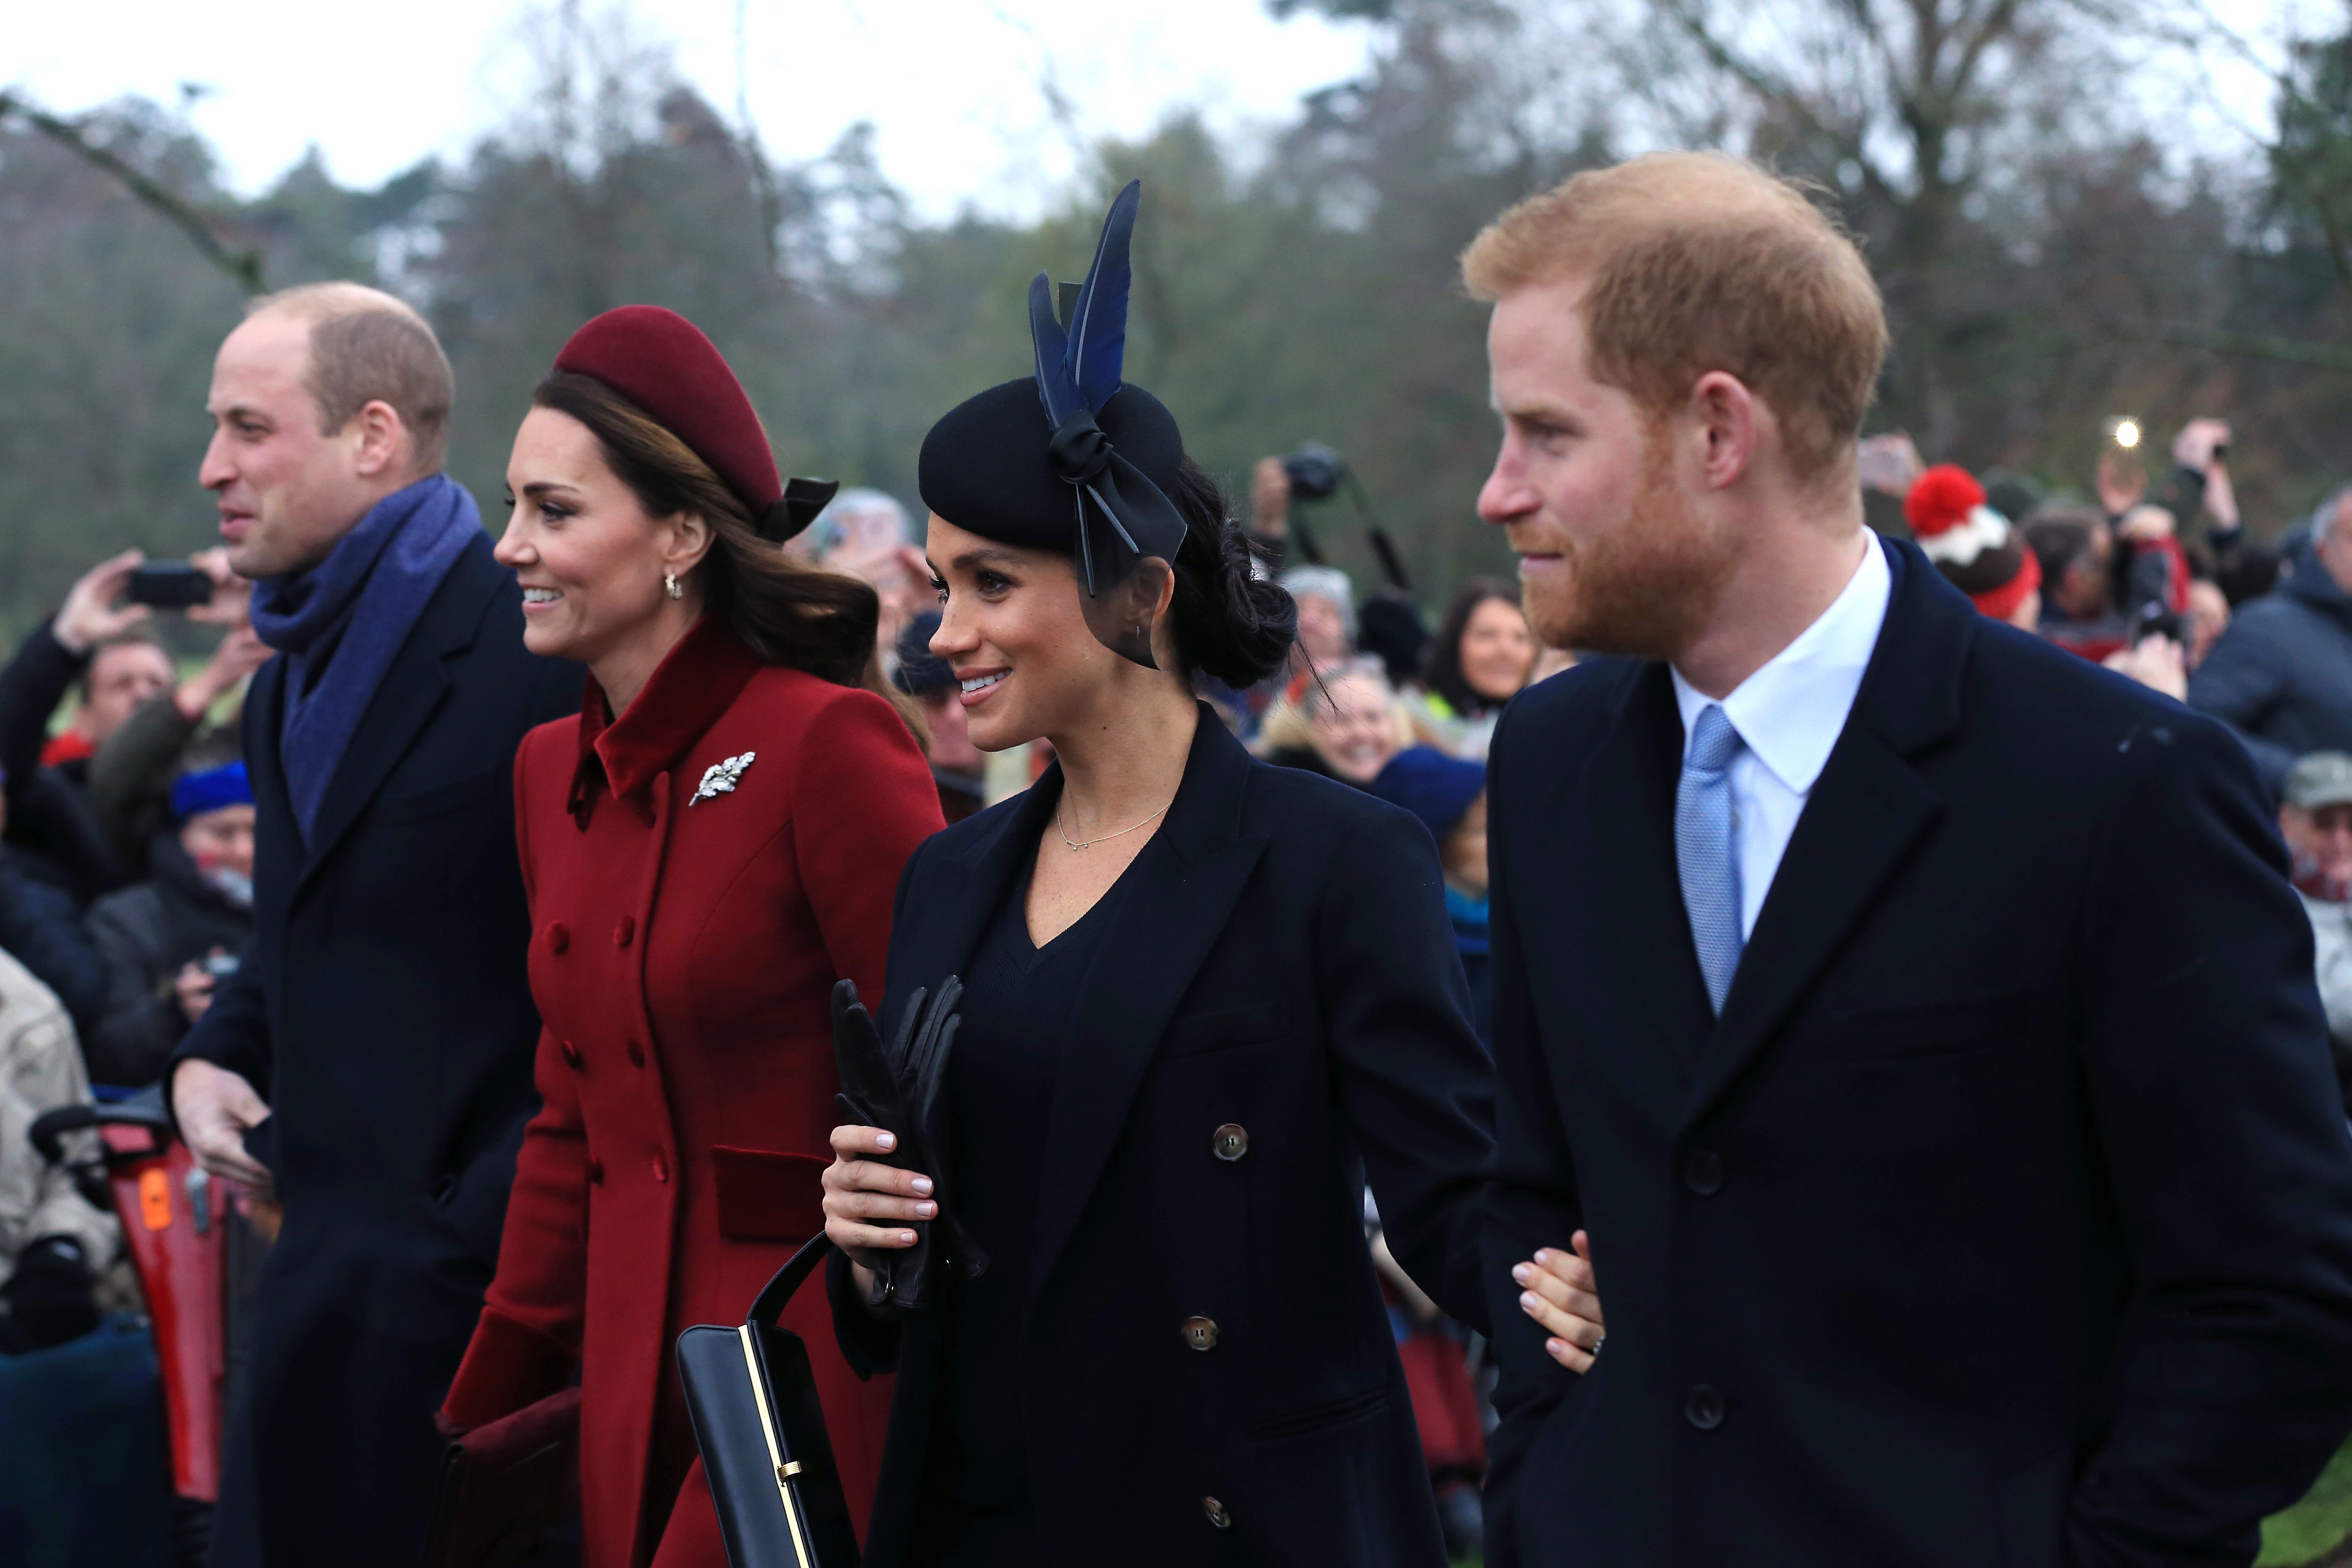 Kate Middleton and Prince William Took a Secret Visit to Meghan Markle at Frogmore Cottage